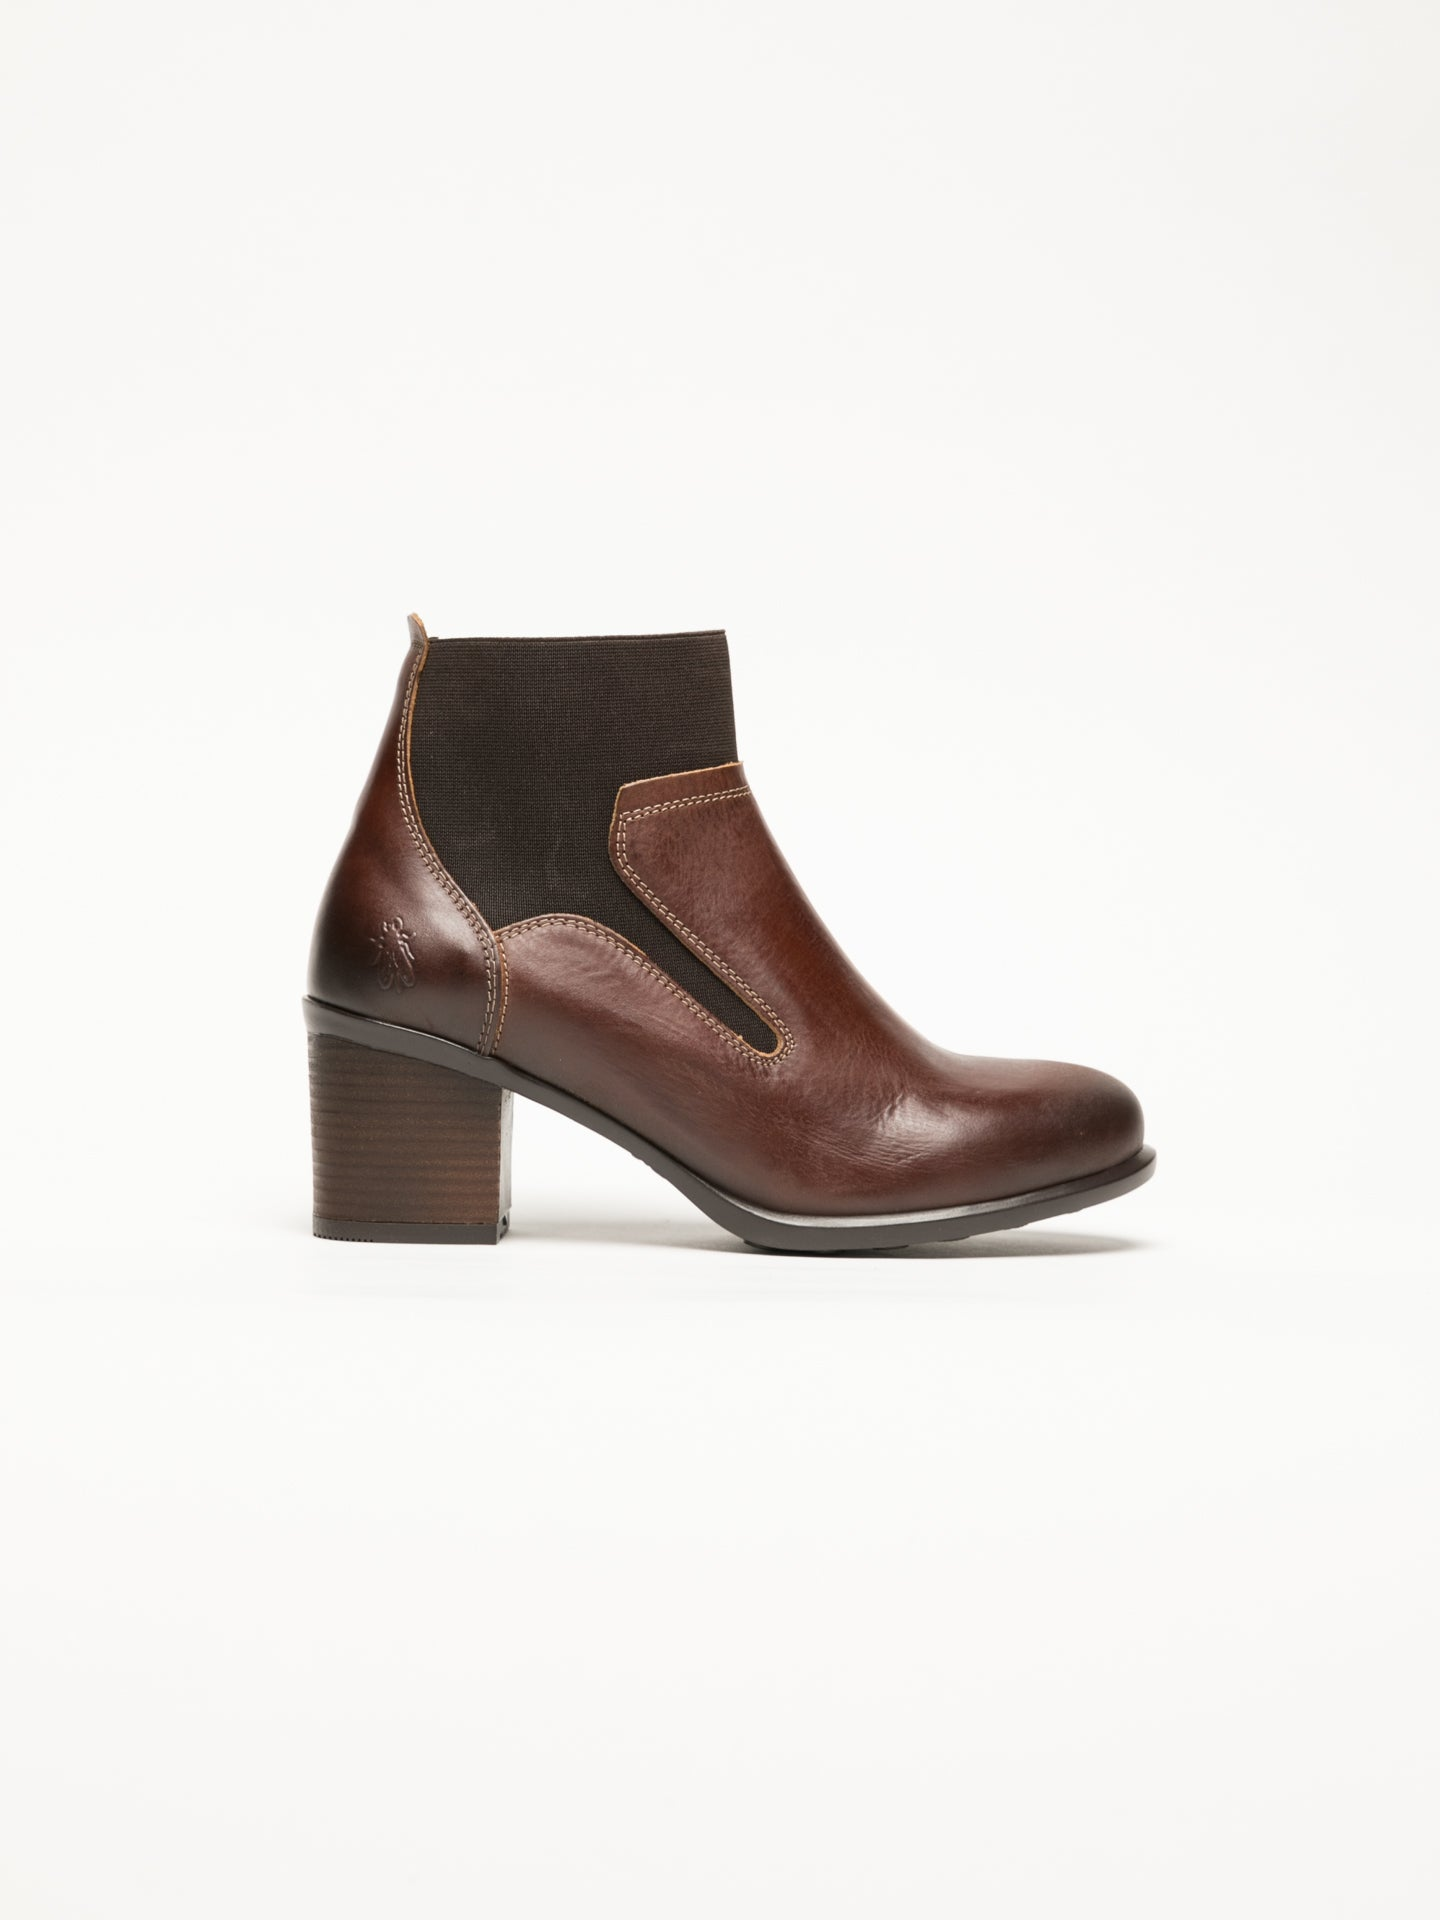 Fly London Brown Round Toe Ankle Boots